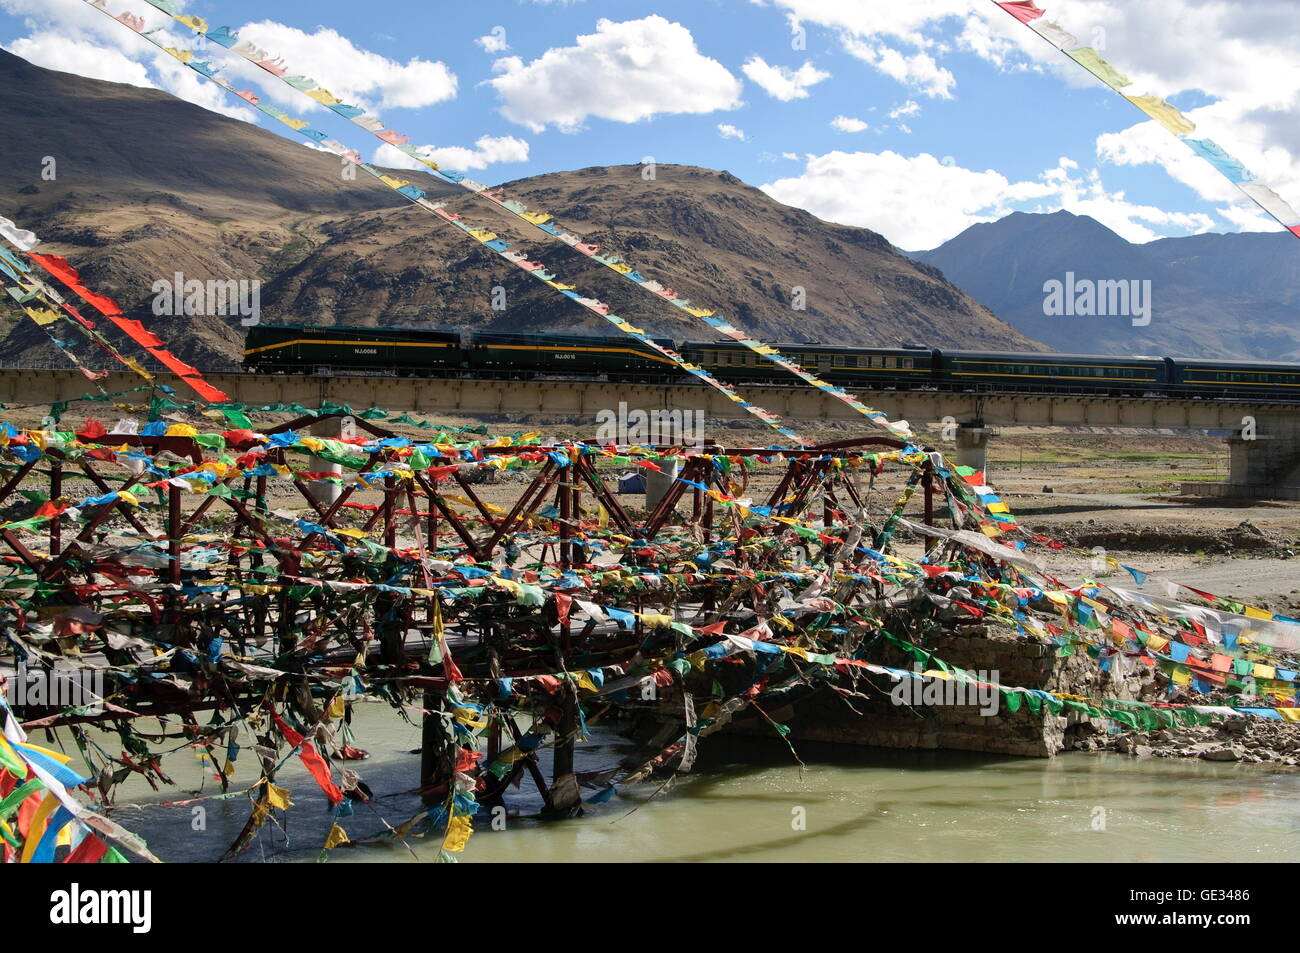 geography / travel, China, Tibet, Tsurphu, Qinghai-Tibet Railway, Additional-Rights-Clearance-Info-Not-Available - Stock Image